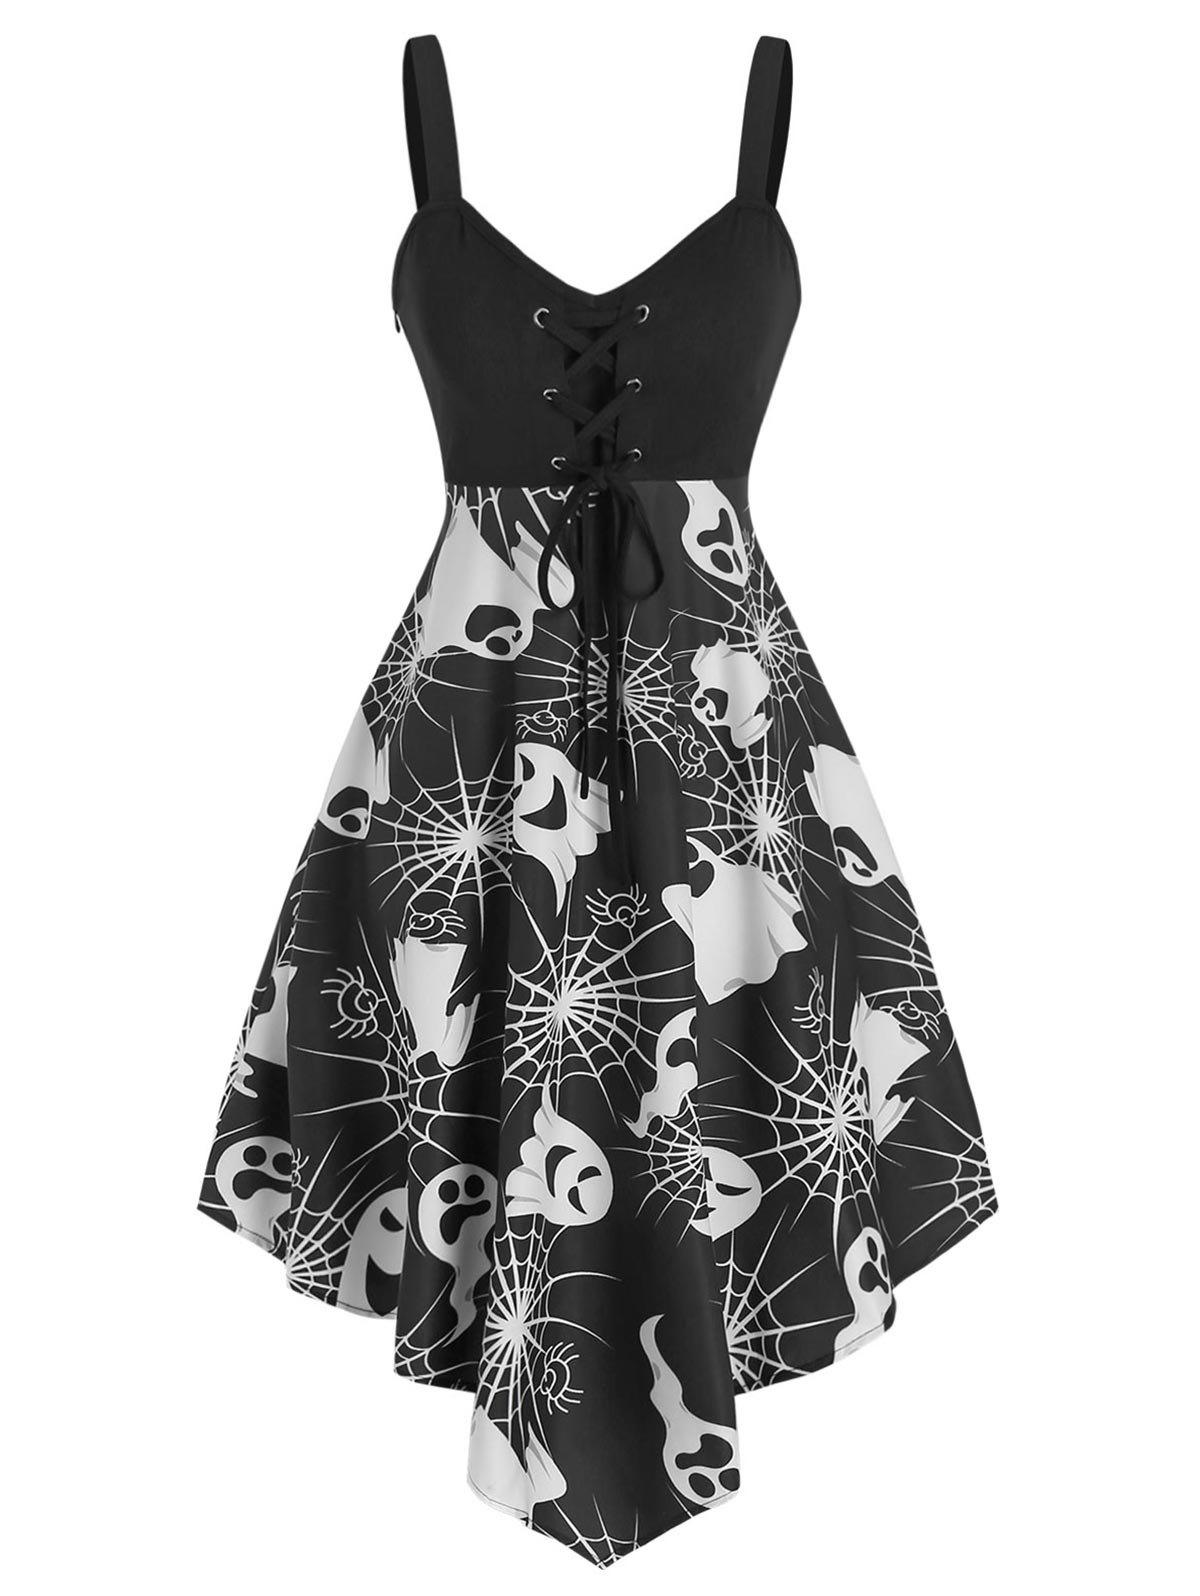 Shops Halloween Ghost Print Lace Up Cami Asymmetrical Dress